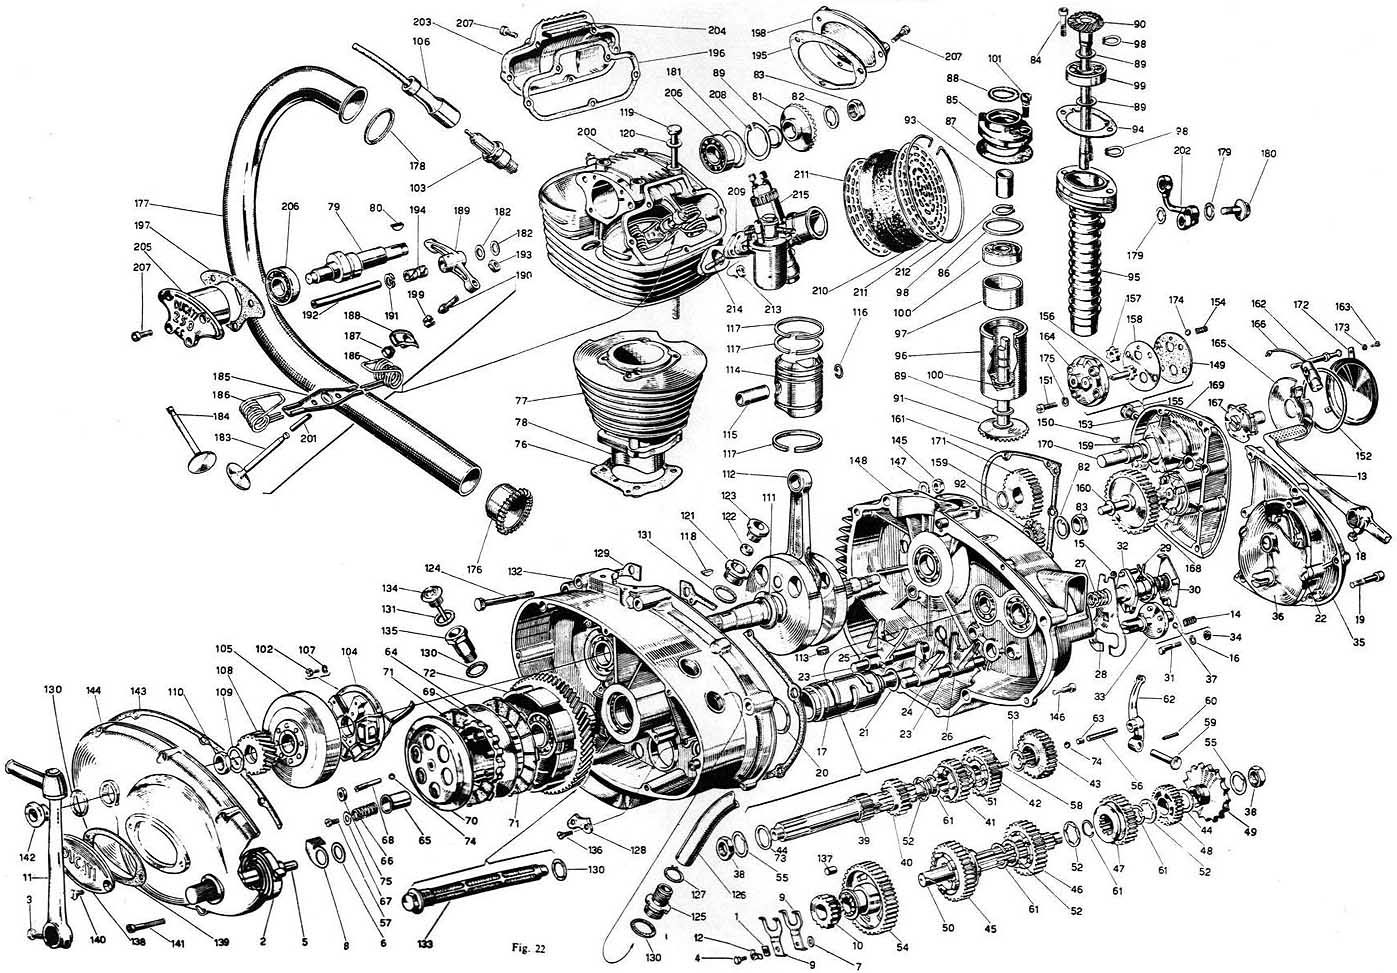 Vintage Car Motor Schematic